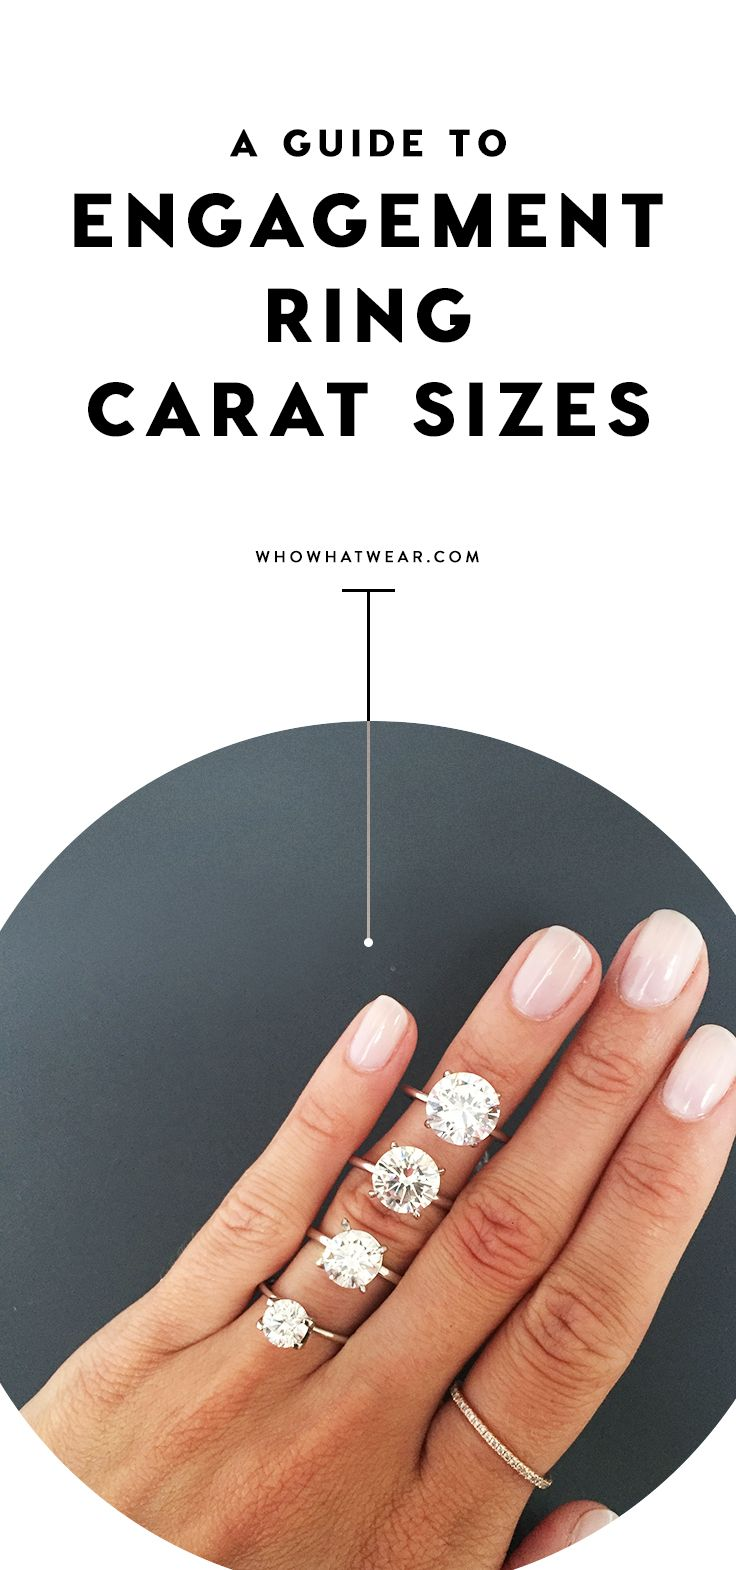 A SidebySide Carat Comparison of Different Engagement Ring Sizes